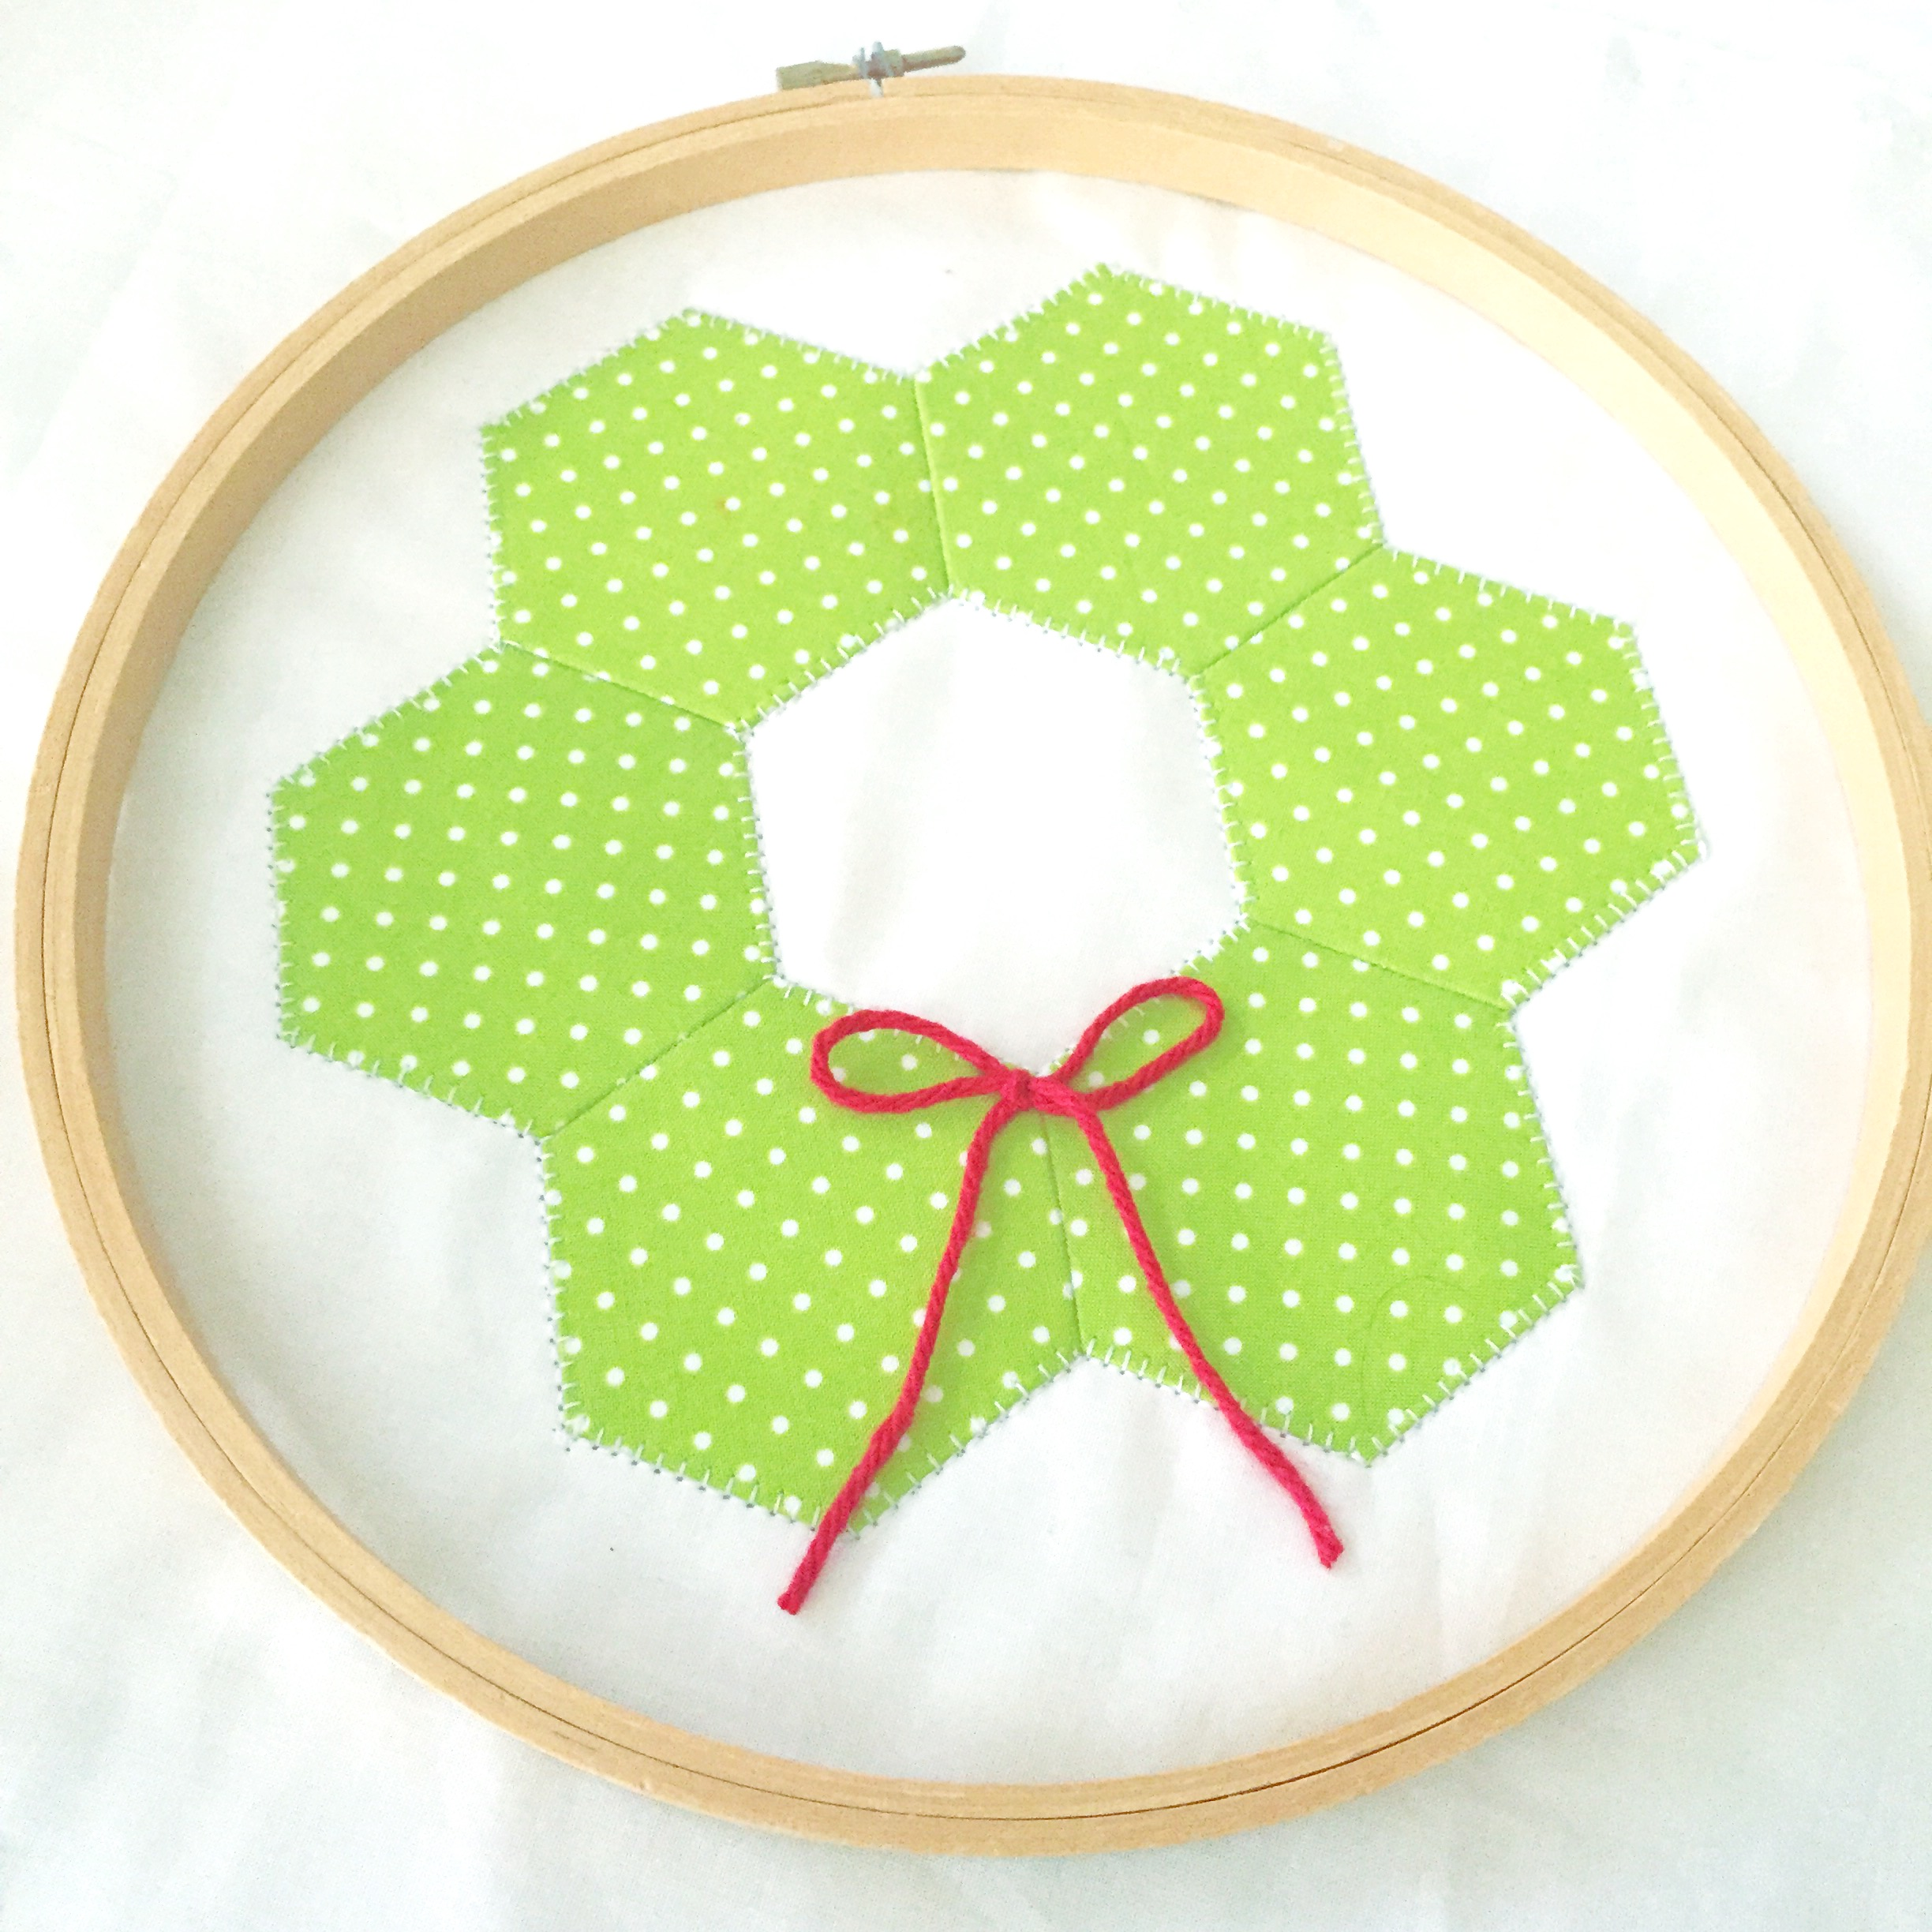 Hexagon Quilted Wreath